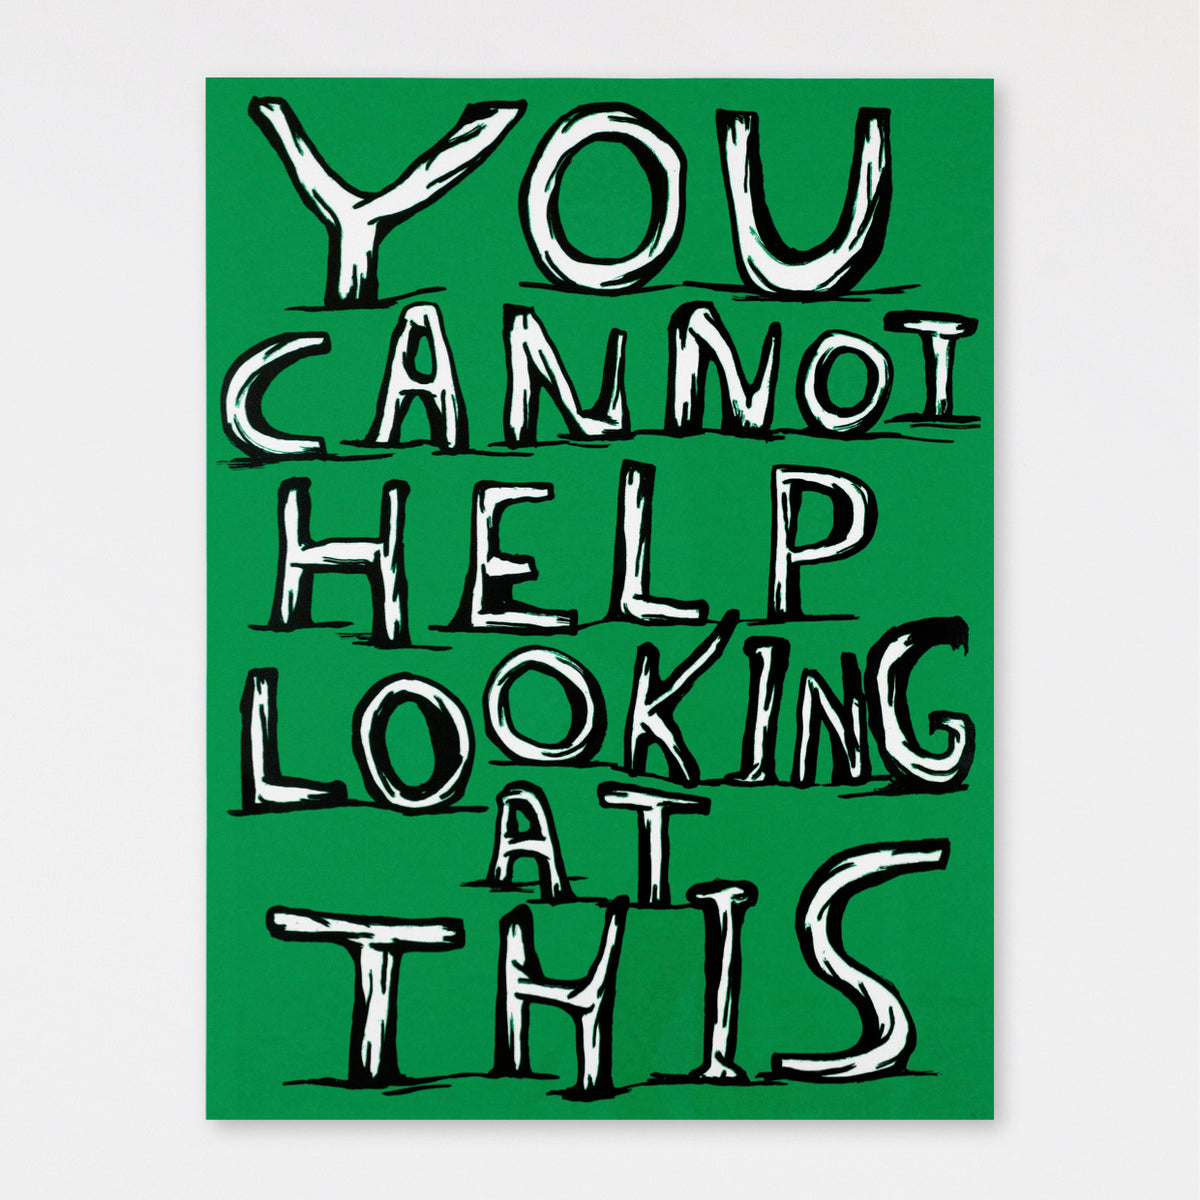 Untitled (You Cannot Help Looking at This) (2007)